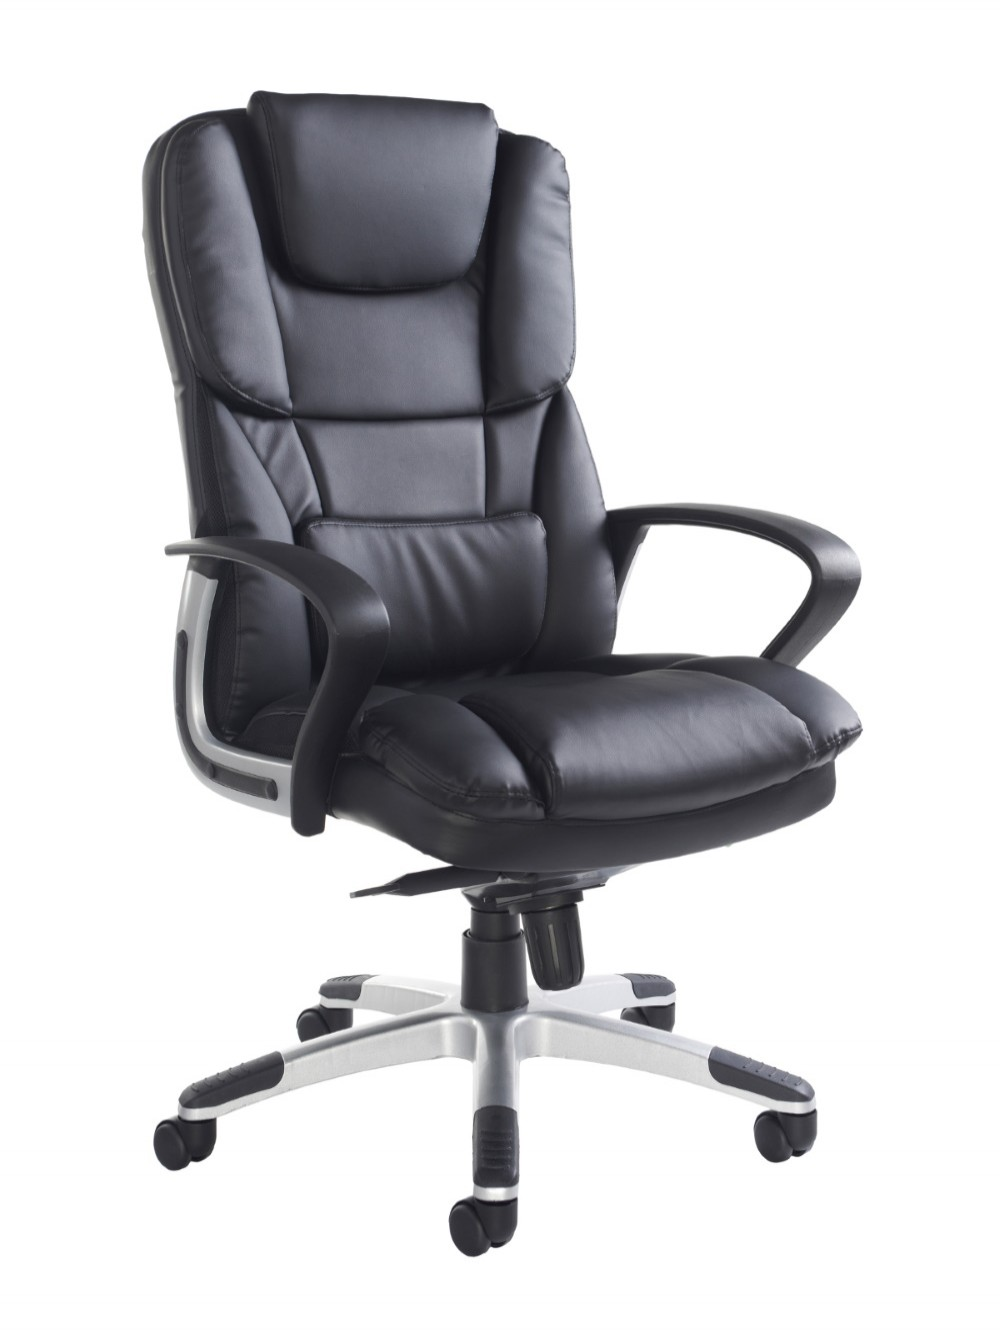 Office Chair Black Faux Leather Palermo Executive Chair PAL300K2 by Dams